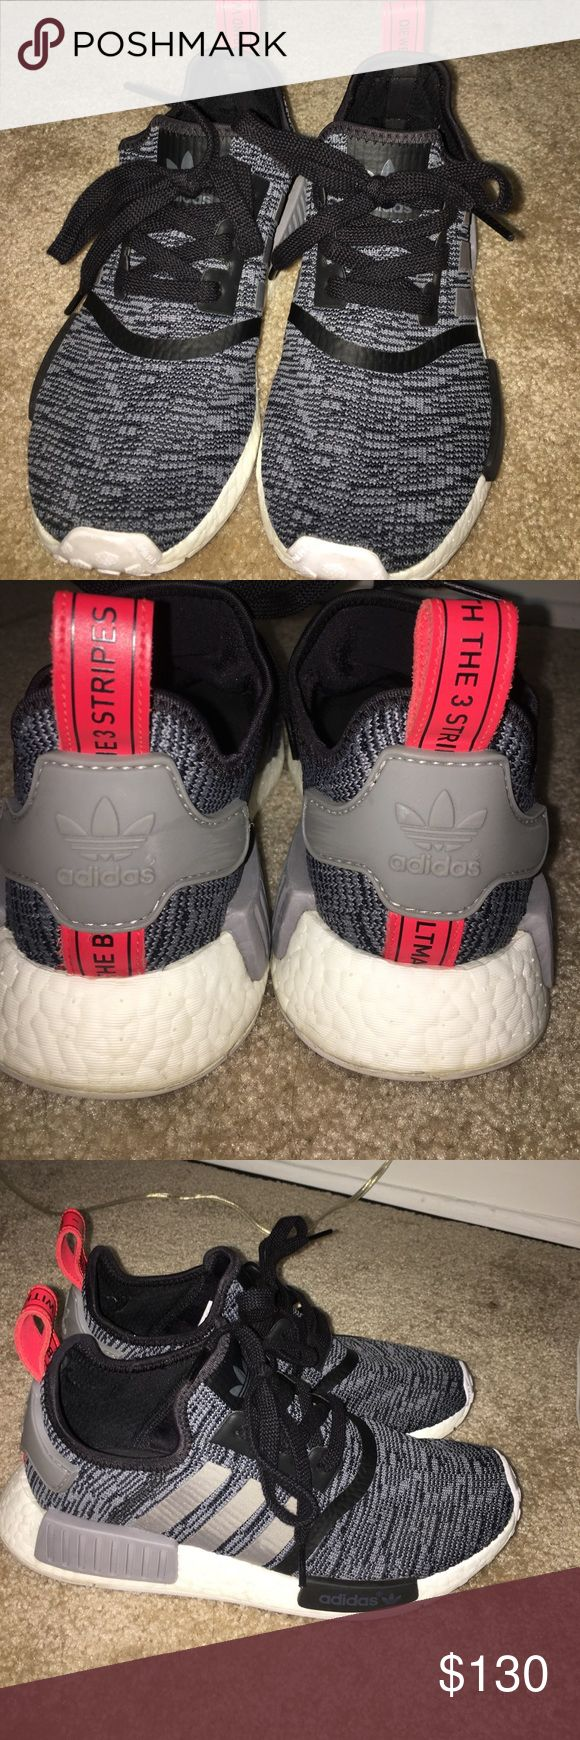 Adidas NMD Size 7. Black white gray and red. Really look to get rid of because I have several NMD and I want to purchase a pair of adidas Tubulars or trade. adidas Shoes Athletic Shoes